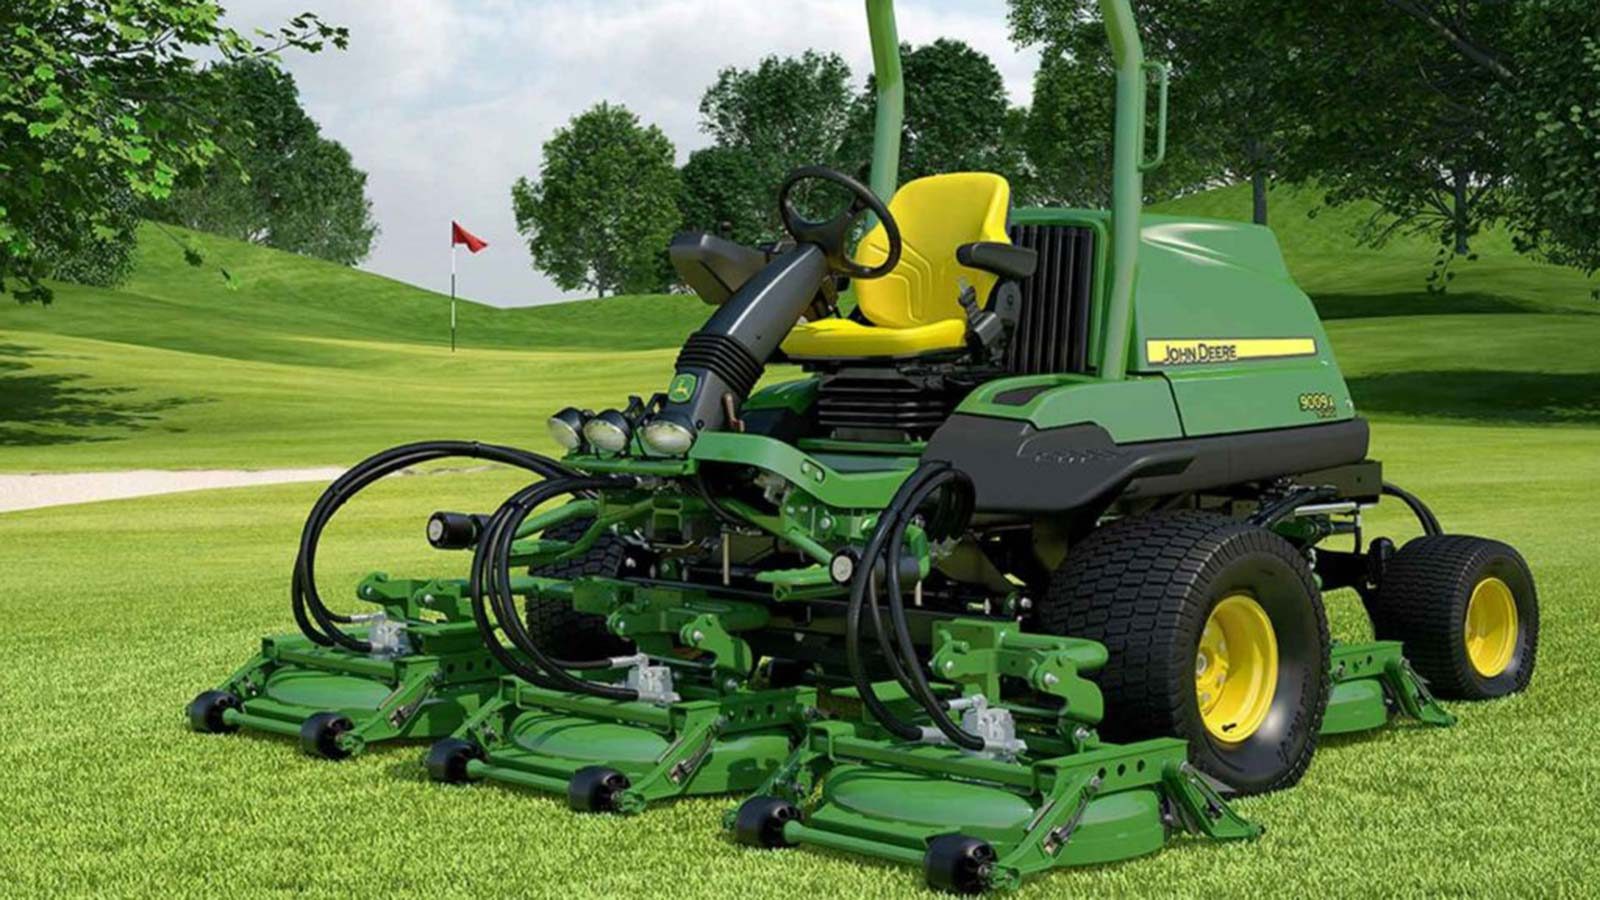 Large-format trade show graphic of John Deere lawn mower